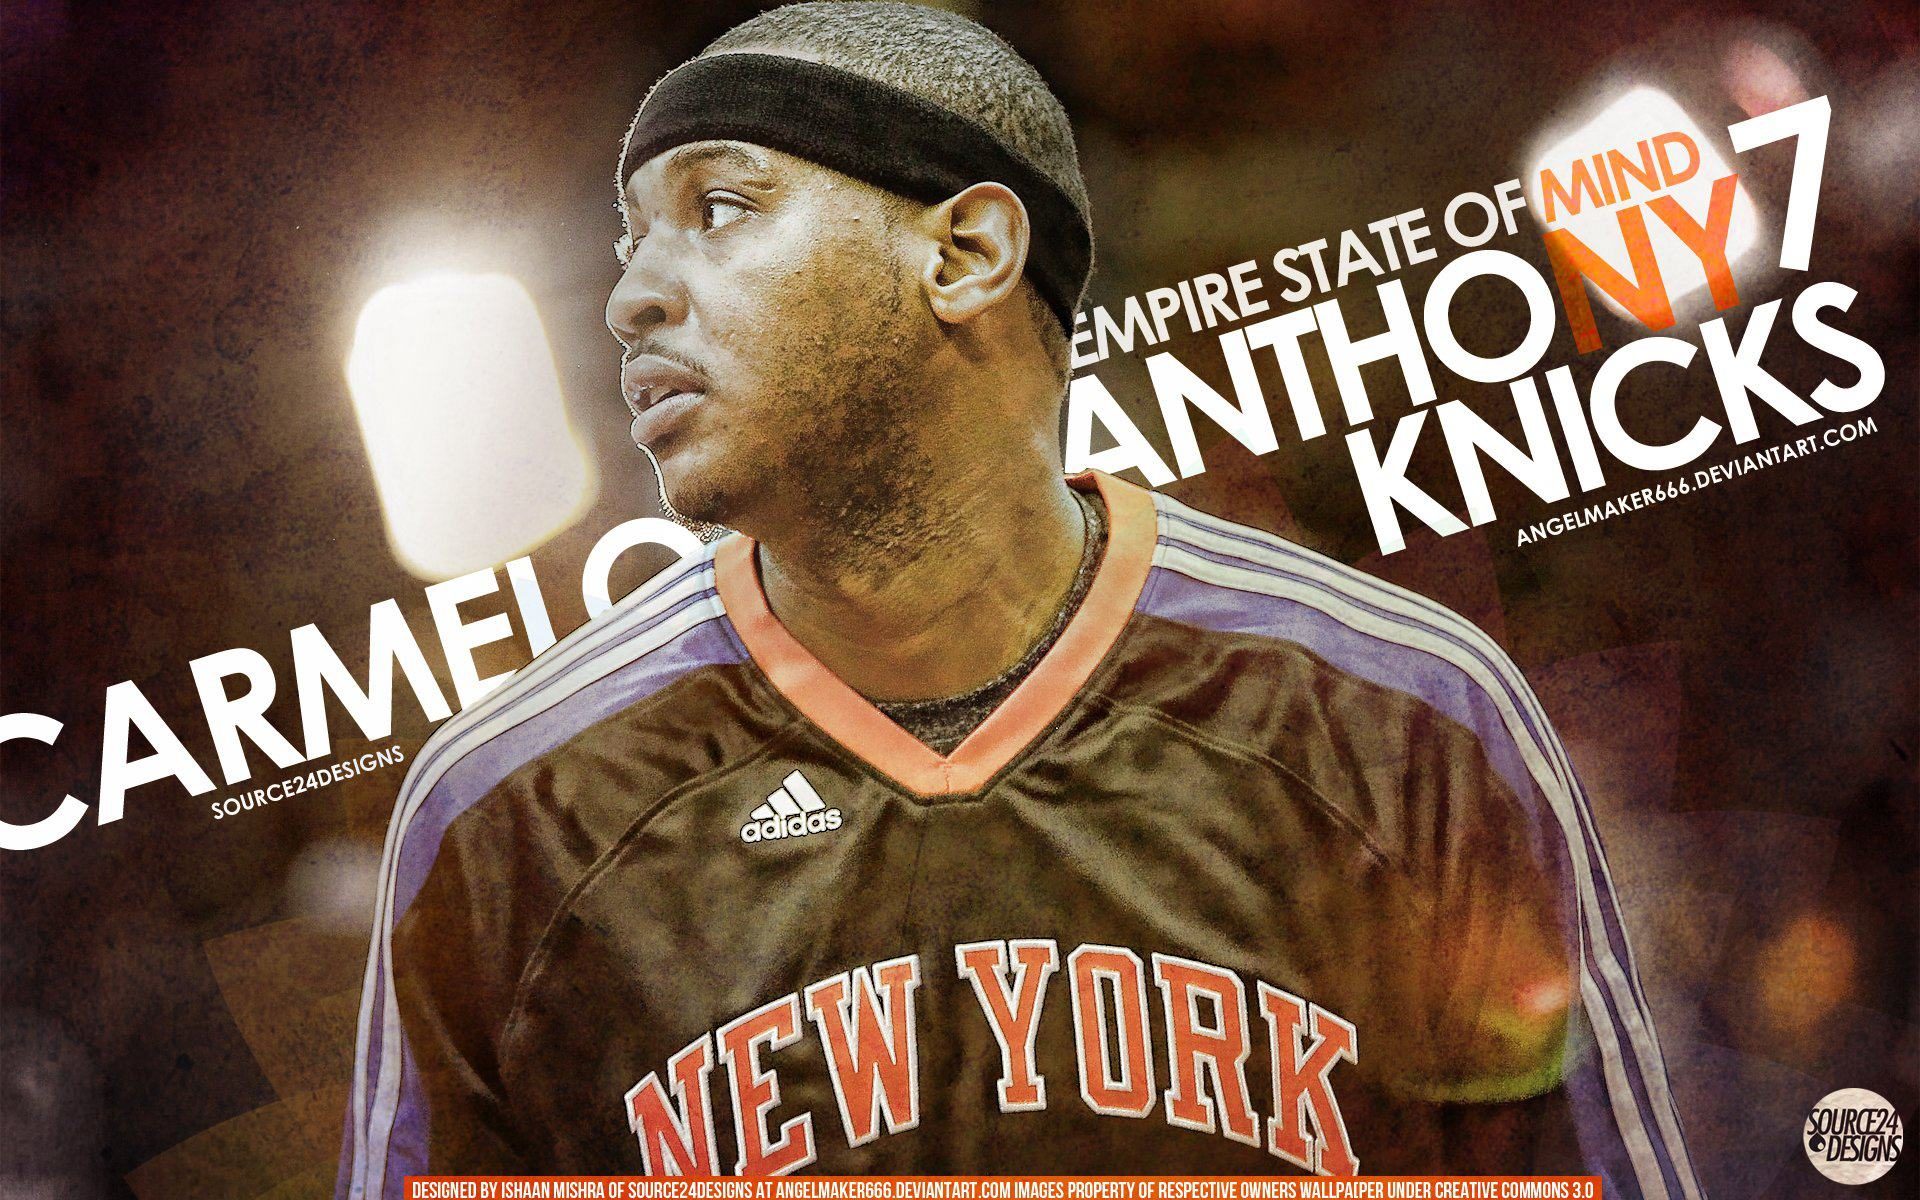 Carmelo Anthony Knicks Wallpaper by IshaanMishra on DeviantArt